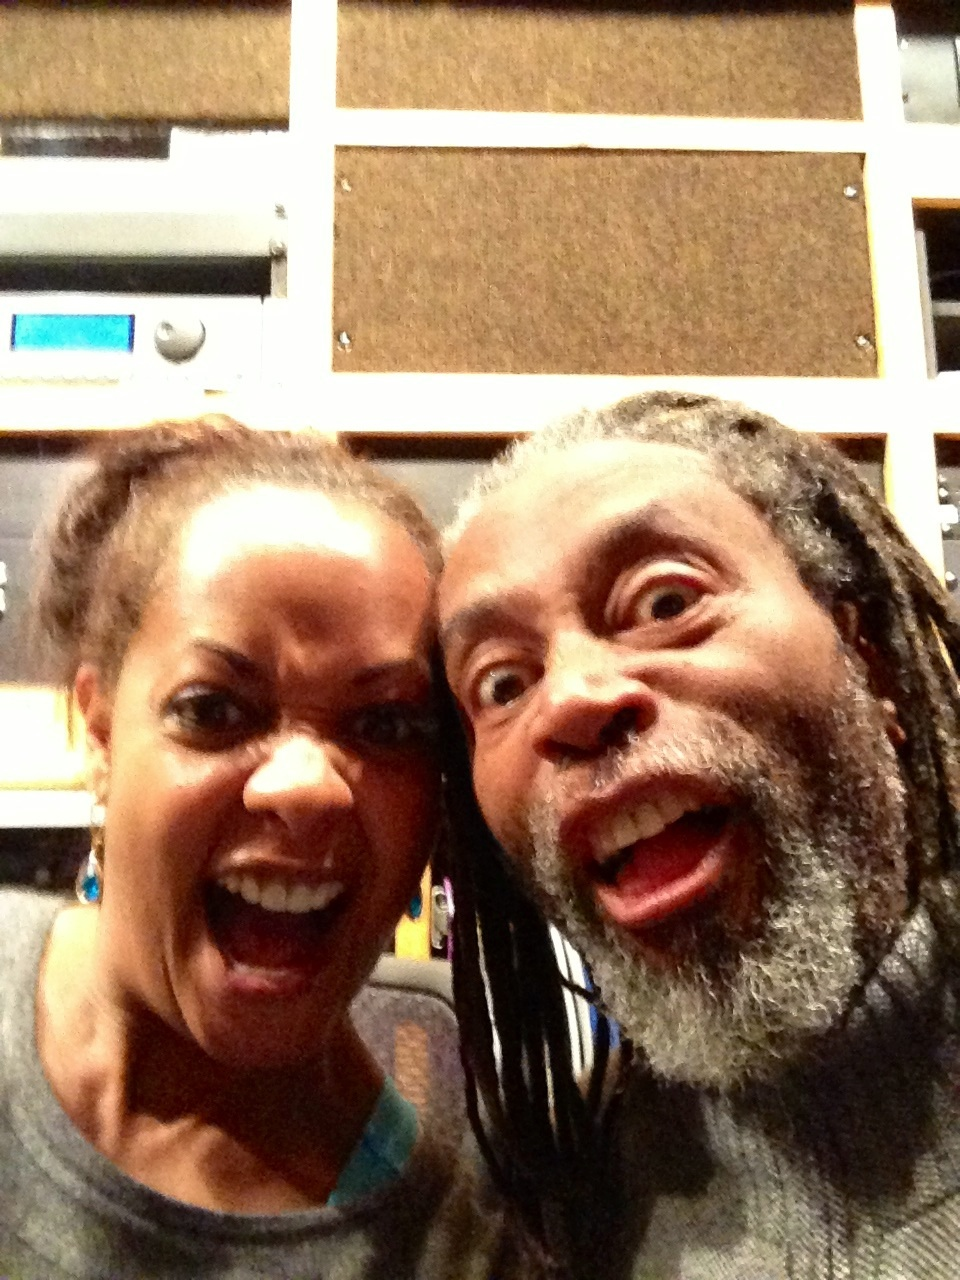 Mugging for the camera with my friend and collaborator Bobby McFerrin